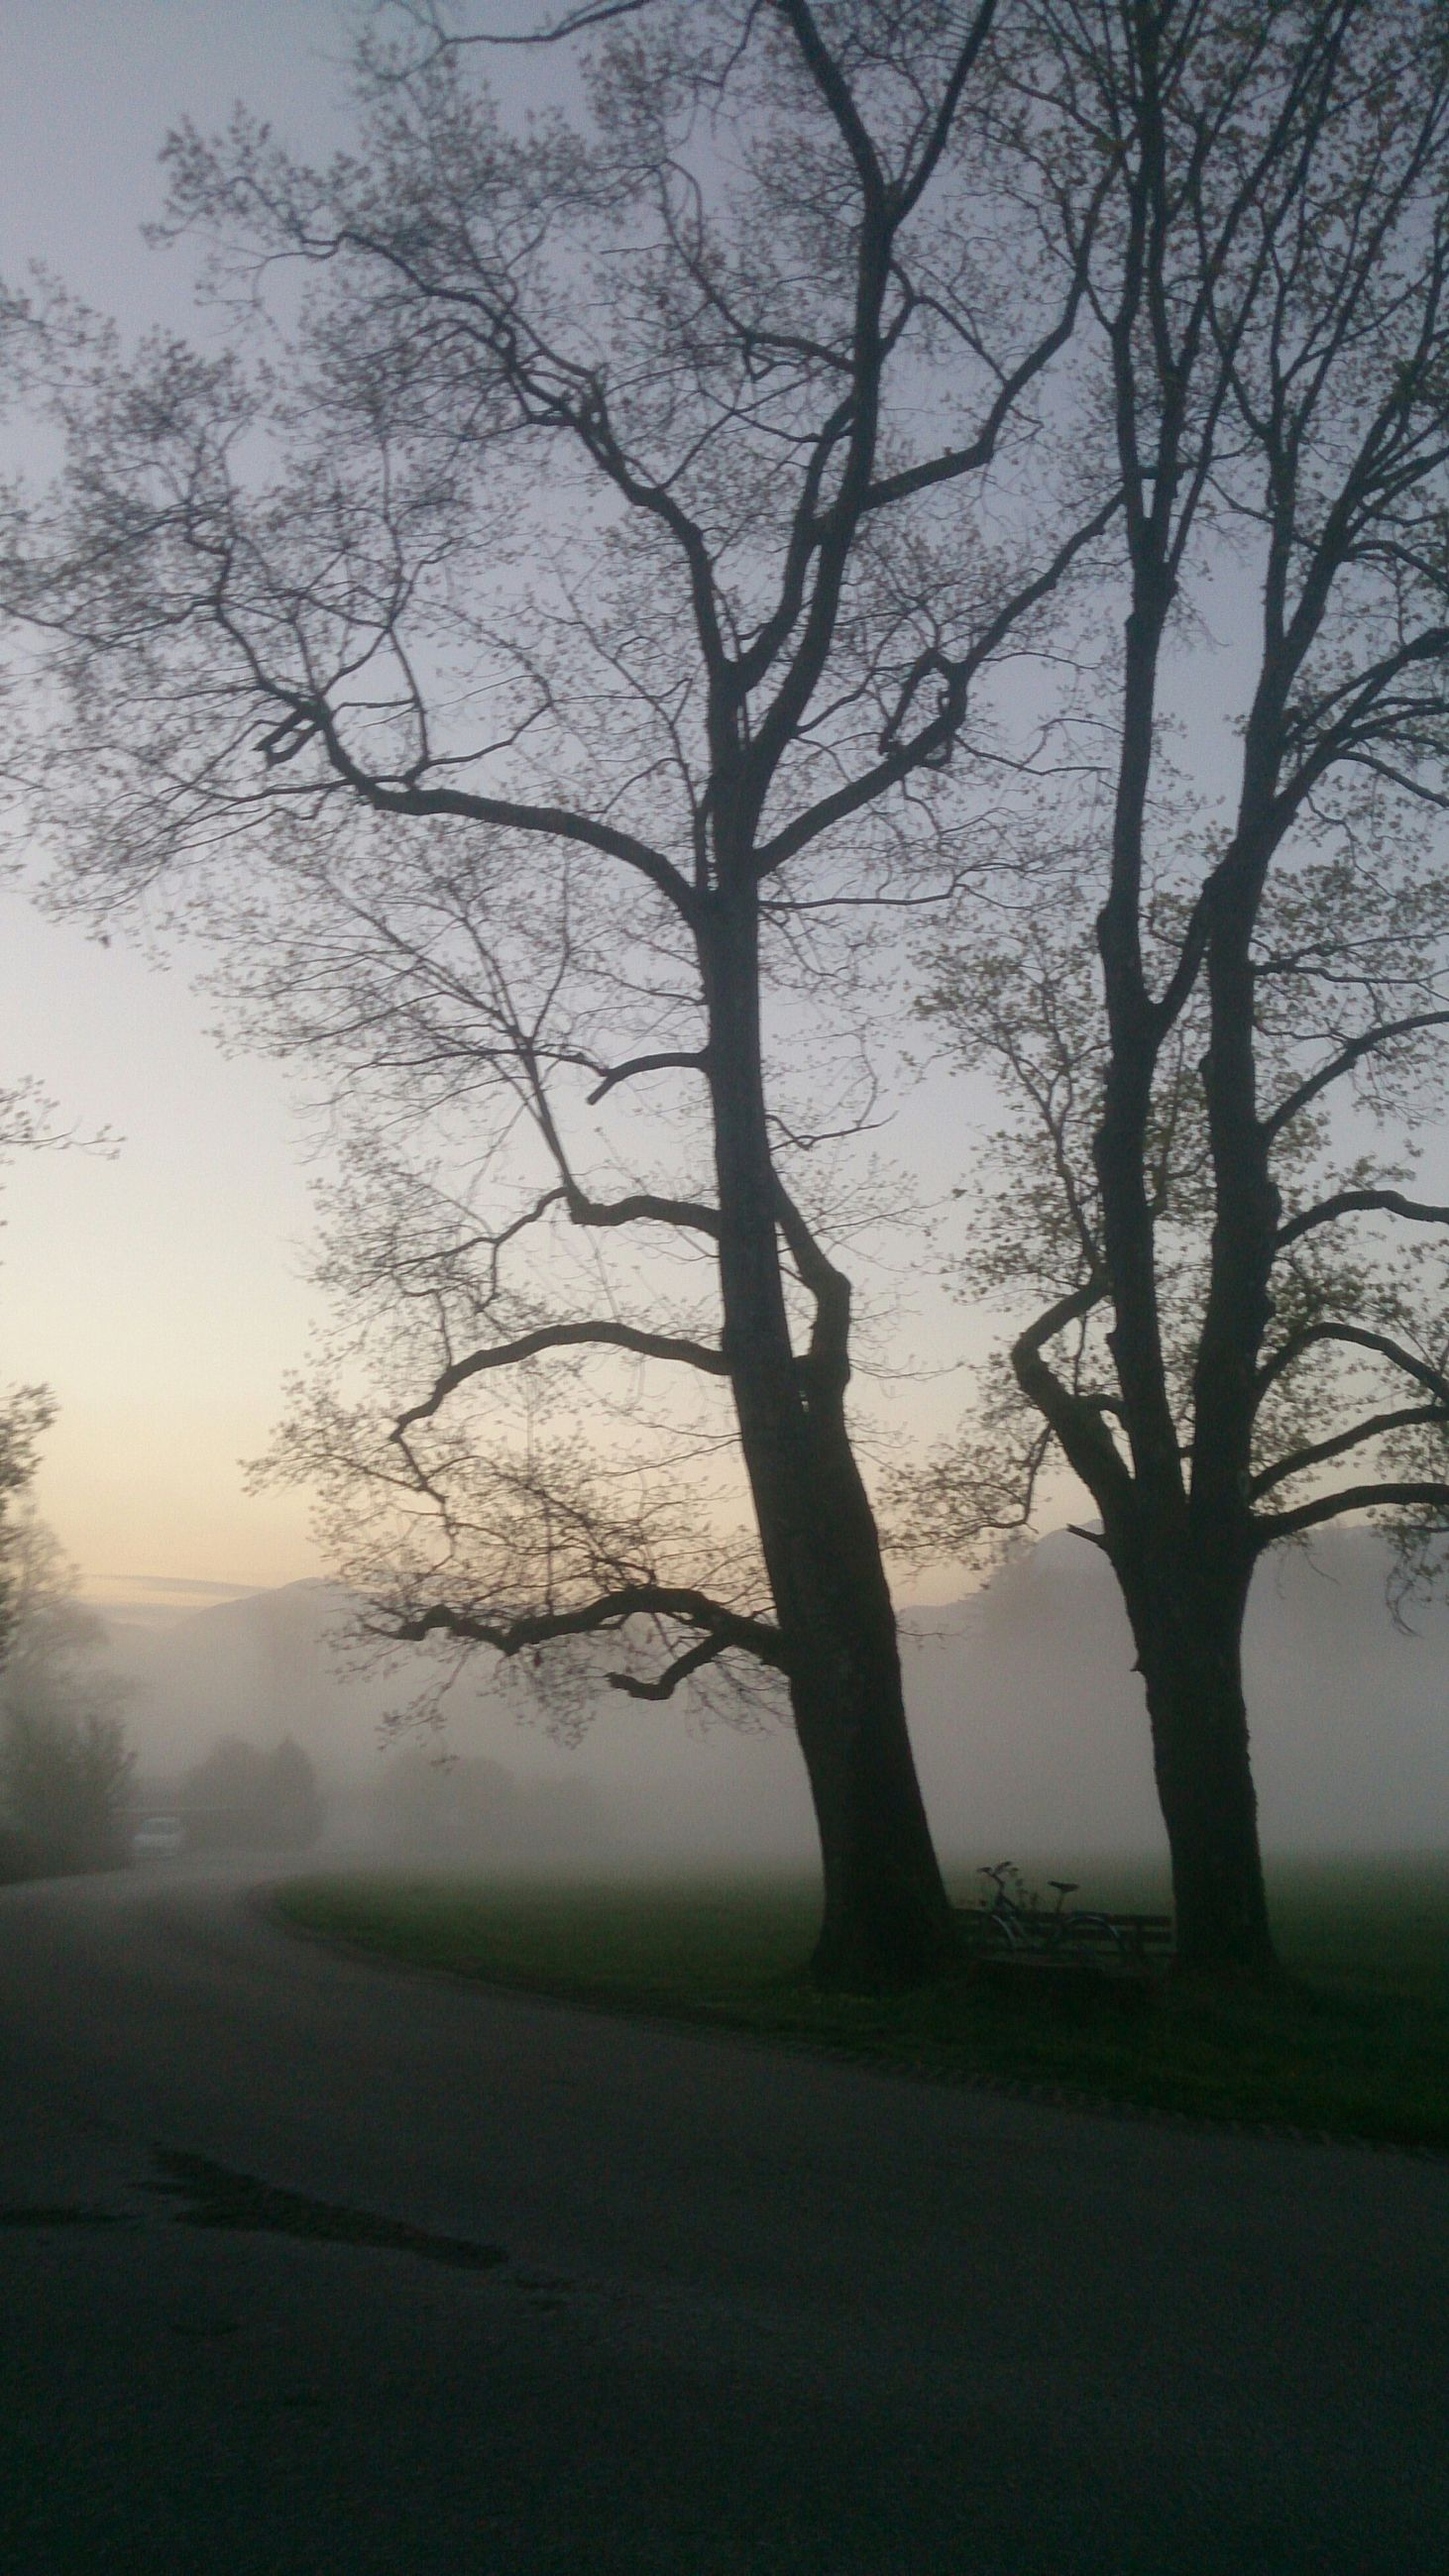 tree, bare tree, tranquility, tranquil scene, branch, silhouette, nature, landscape, beauty in nature, scenics, fog, field, tree trunk, growth, sky, non-urban scene, no people, outdoors, road, solitude